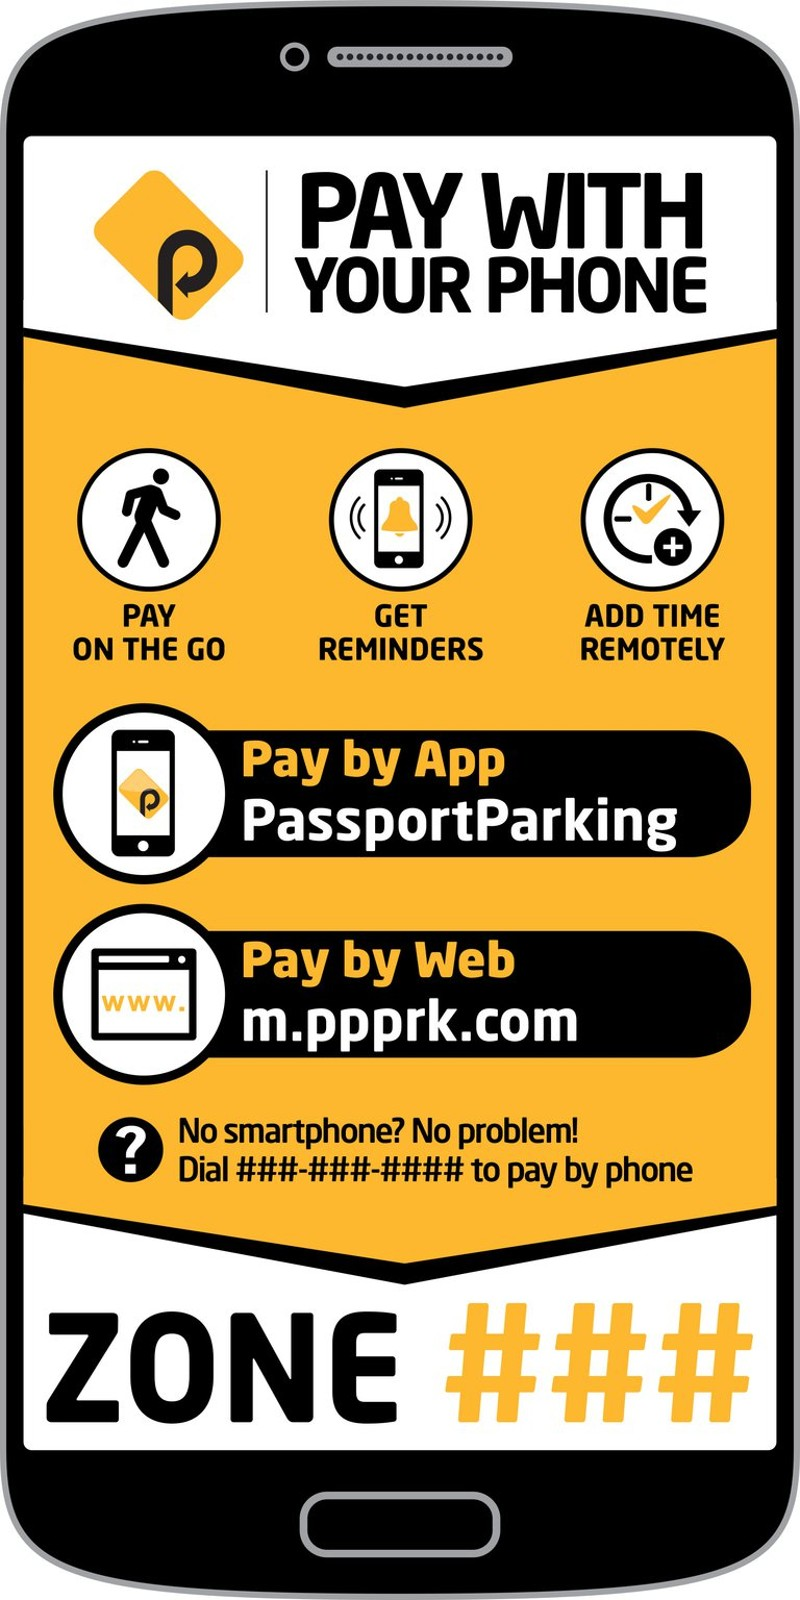 New parking meter app coming this summer